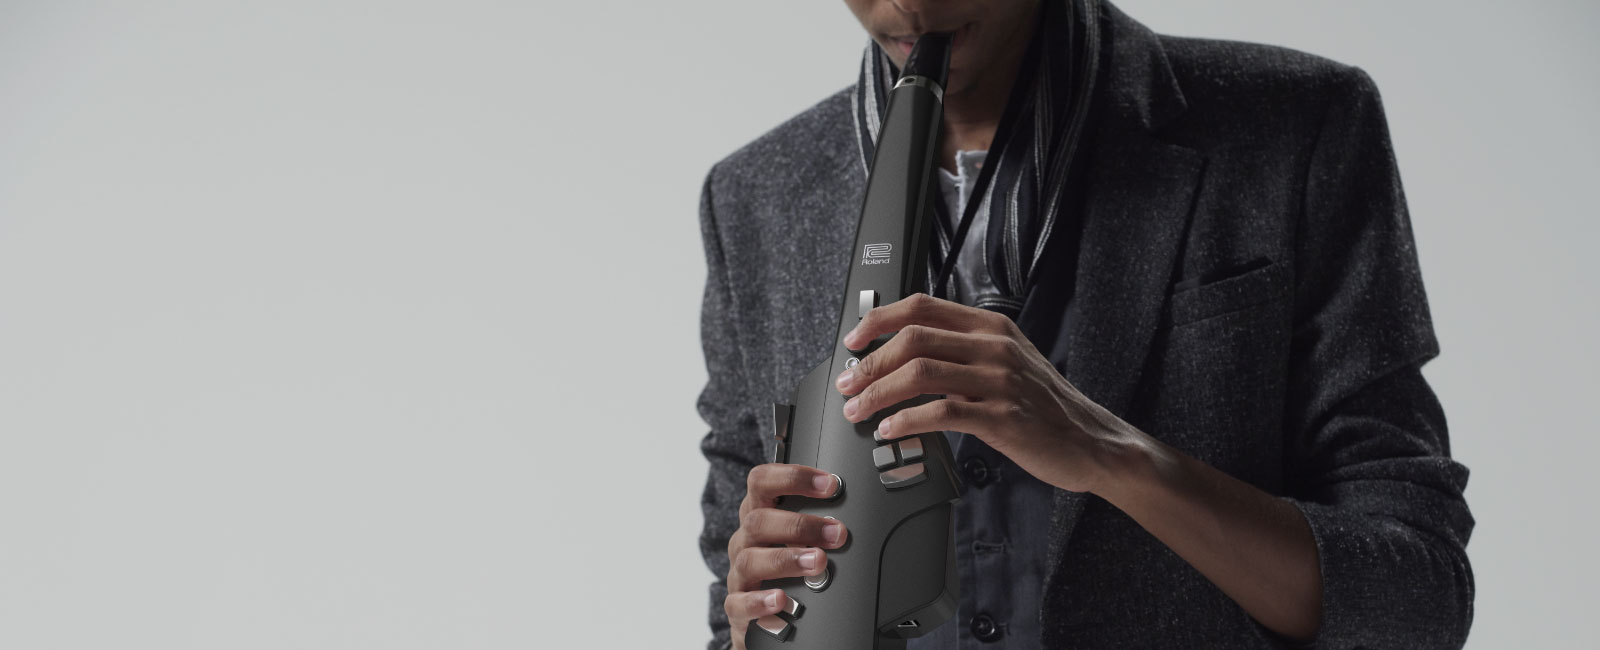 New Aerophone <br />in <strong>Graphite Black</strong><small>Digital Wind Instrument</small>